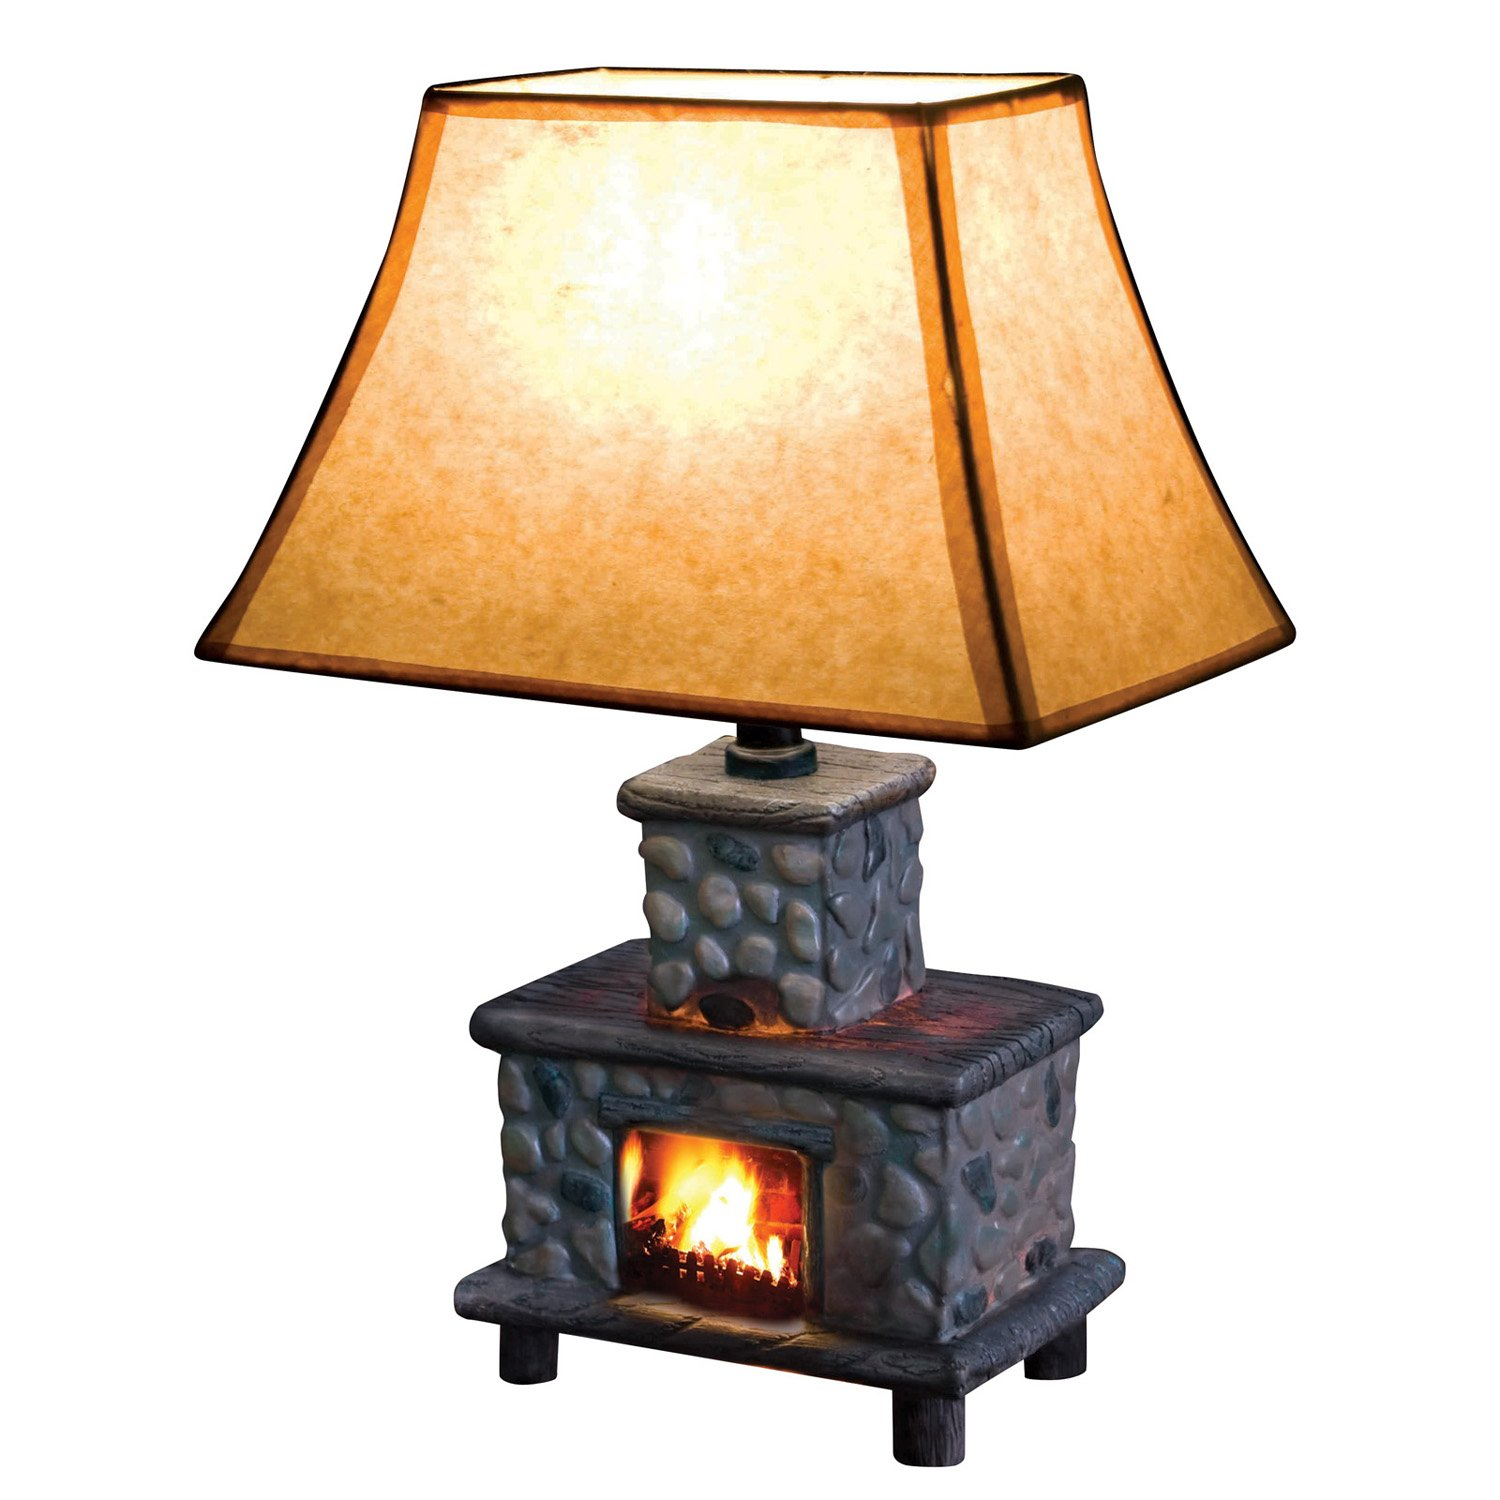 Hand Painted Ceramic Fireplace Table Lamp by JSNY (Image #1)